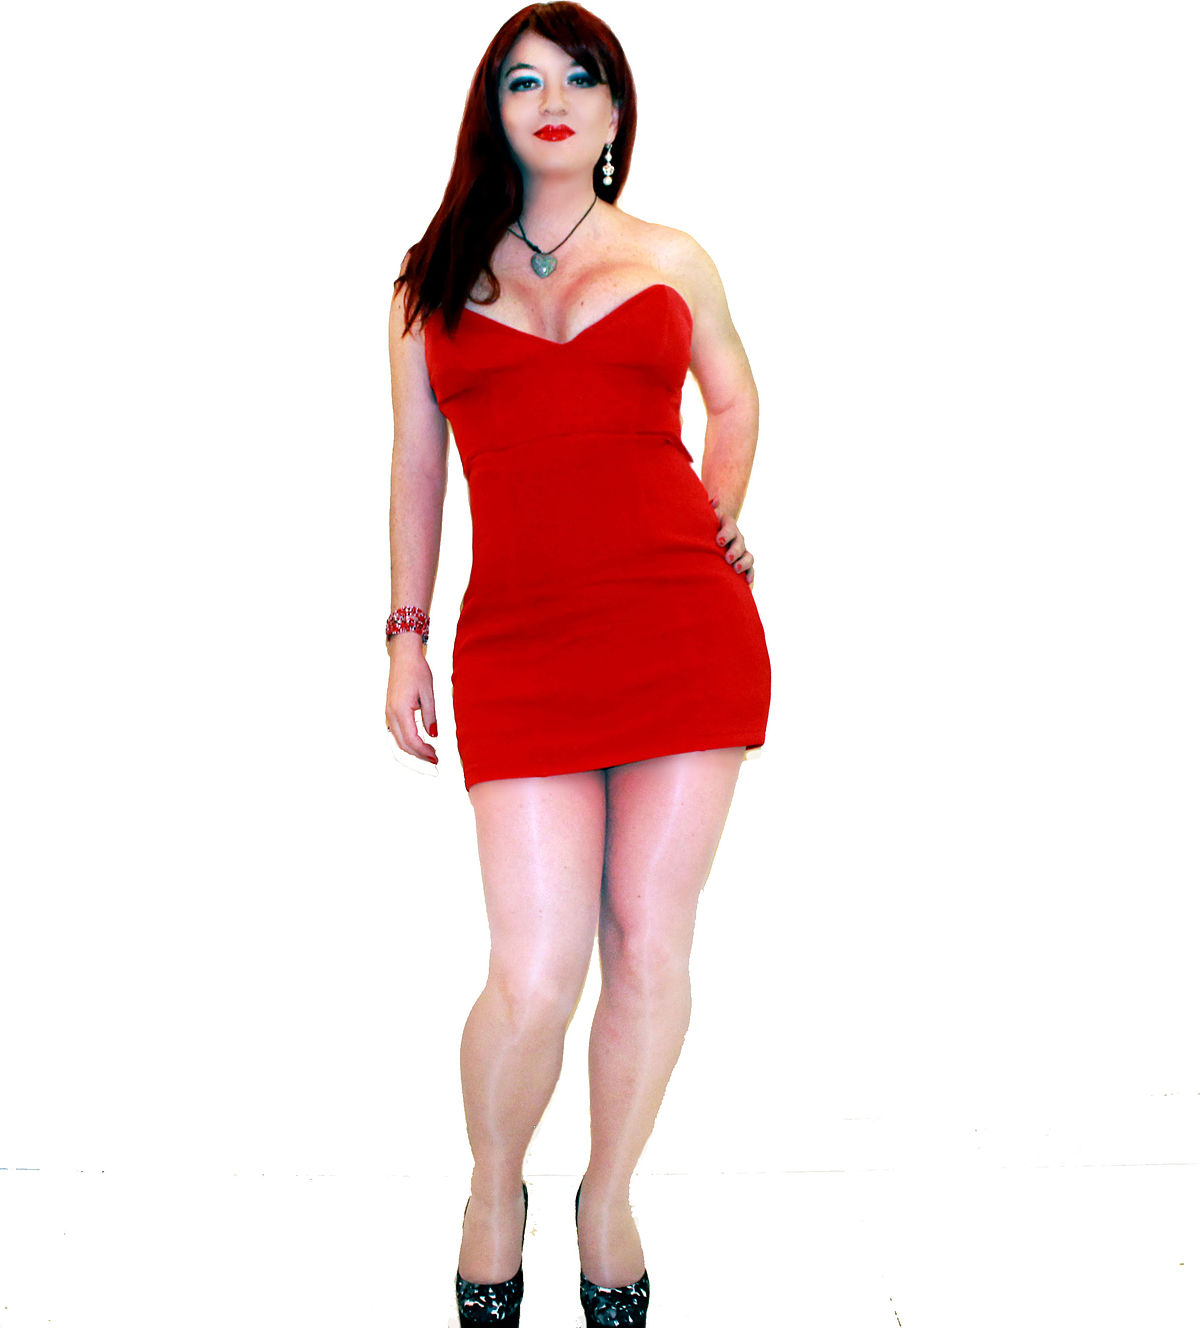 Red dress effect - Wikipedia